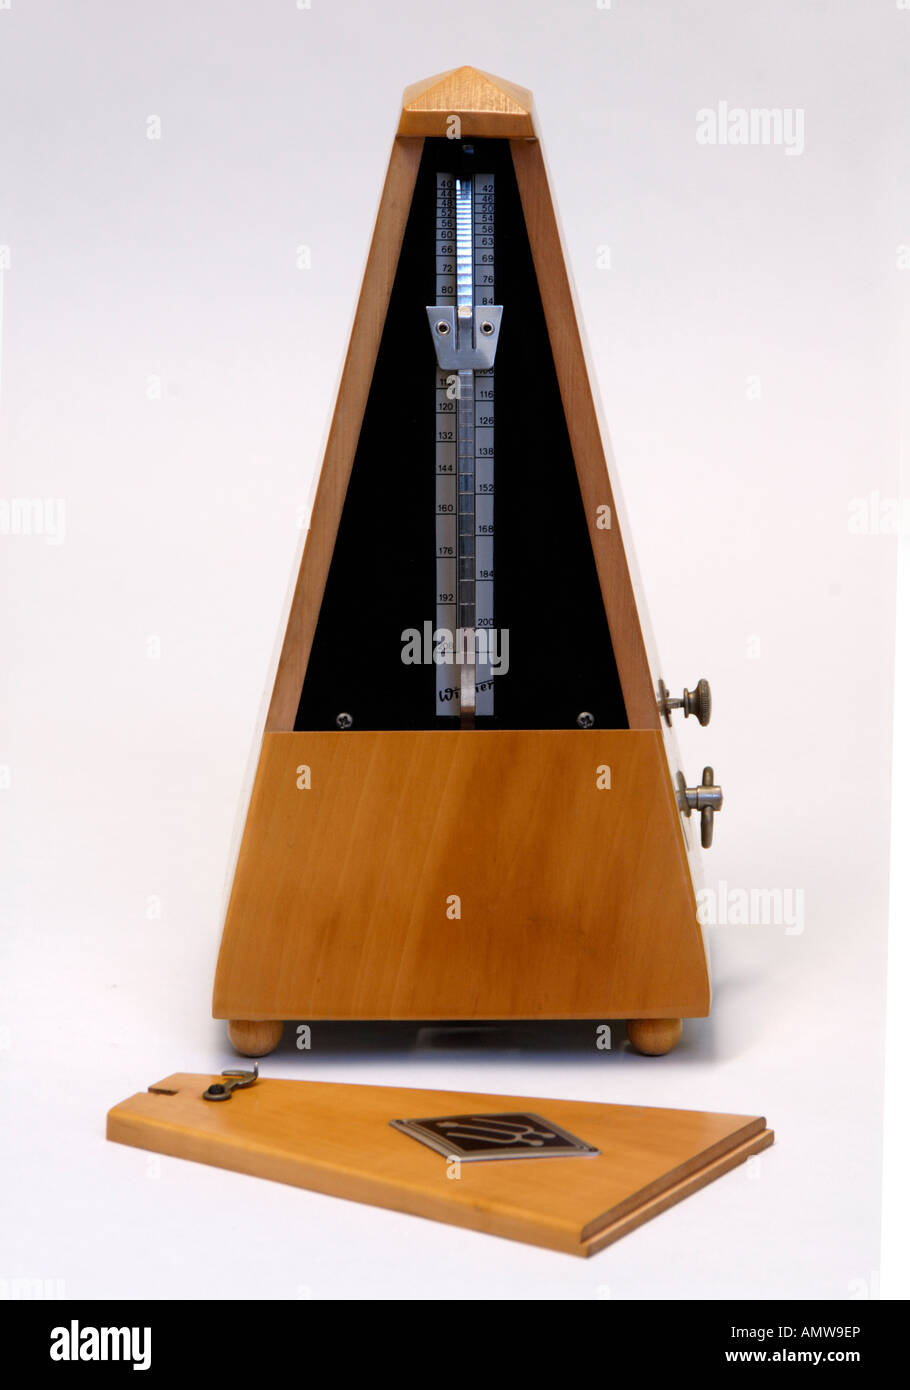 Wittner beechwood clockwork metronome with cover removed . Made in Germany . Stock Photo